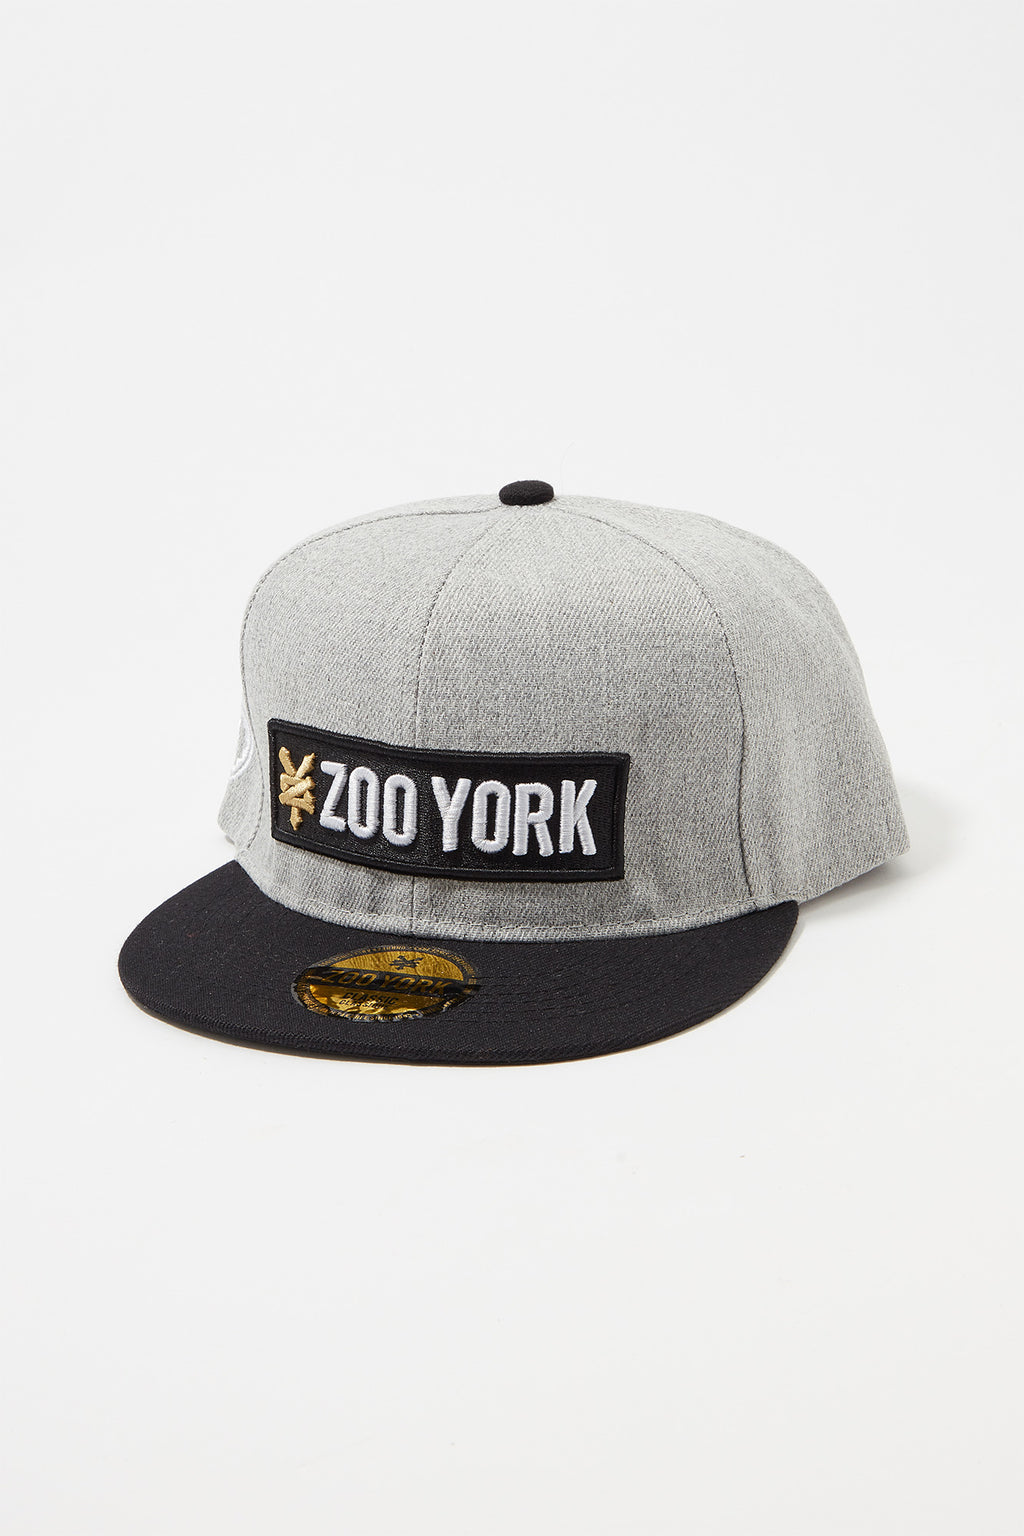 Zoo York Boys Box Logo Flat Brim Hat